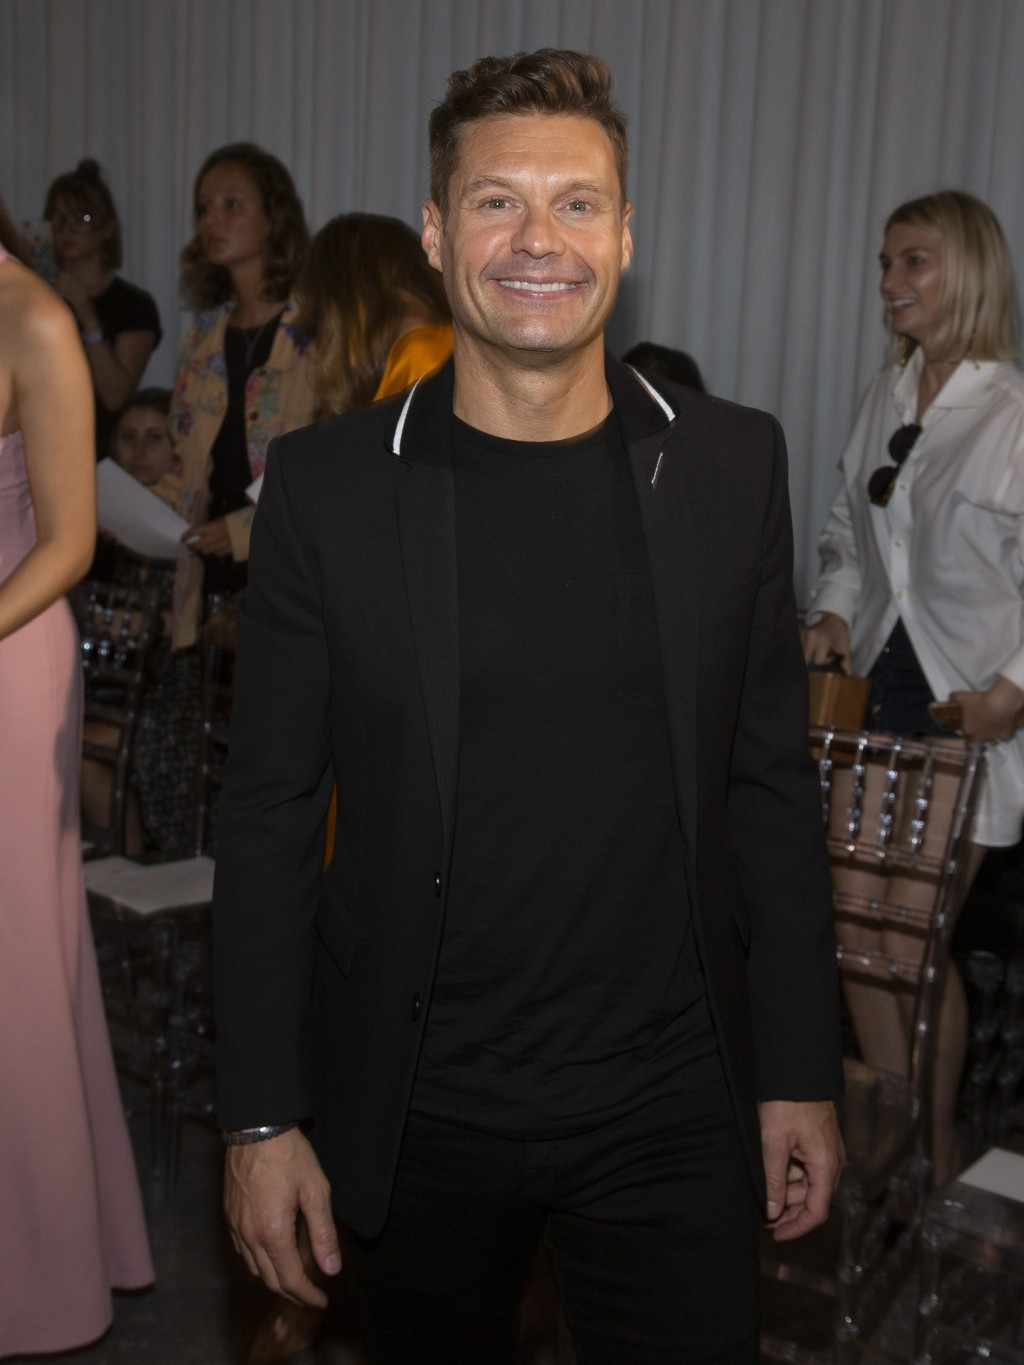 Ryan Seacrest attends the Naeem Khan runway show during NYFW Spring/Summer 2020 at 520 W. 28th Street on Tuesday, Sept. 10, 2019, in New York. (Photo